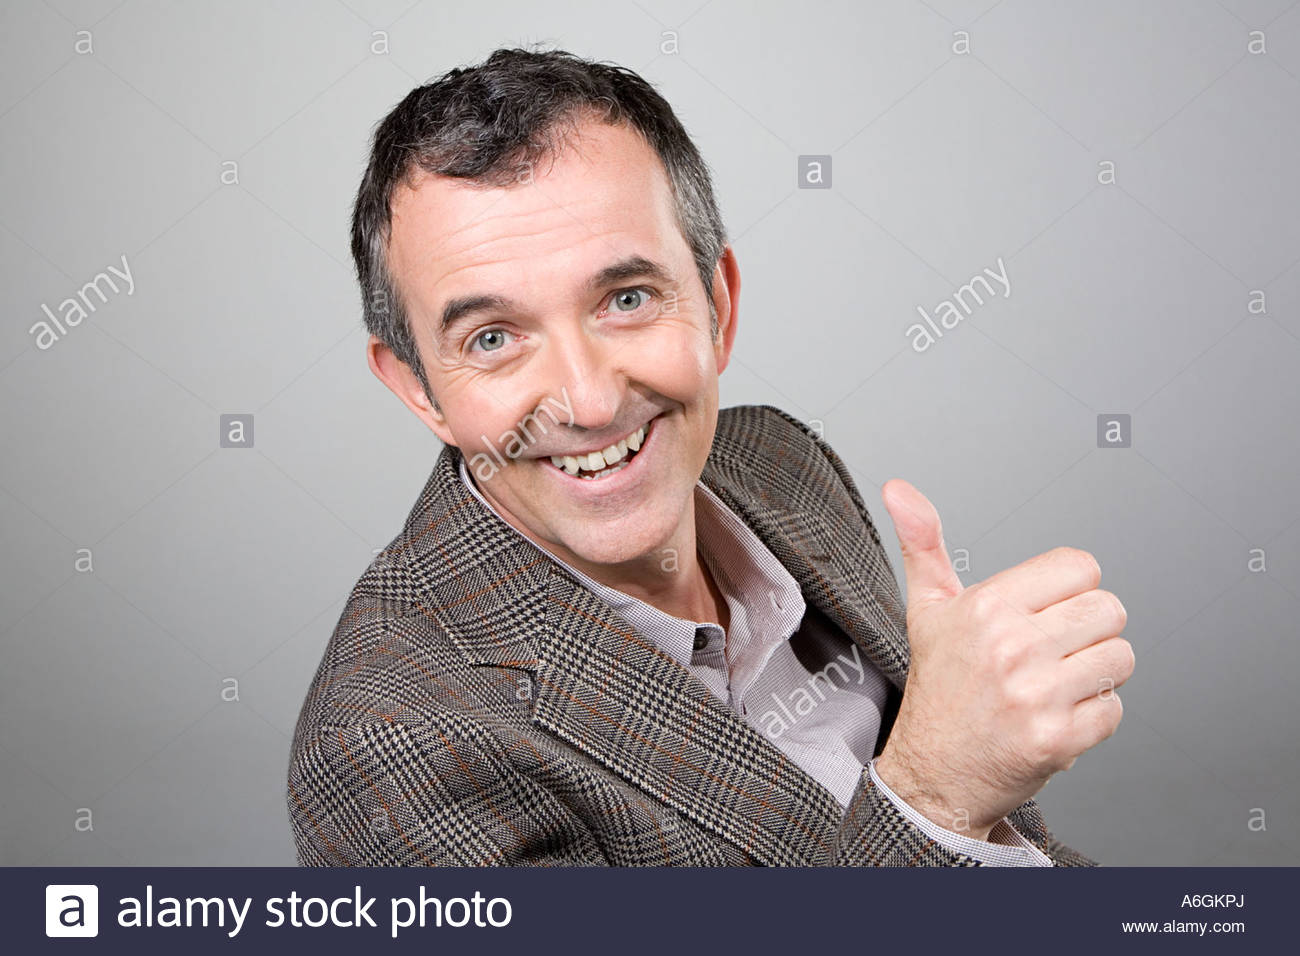 Man giving thumbs up - Stock Image